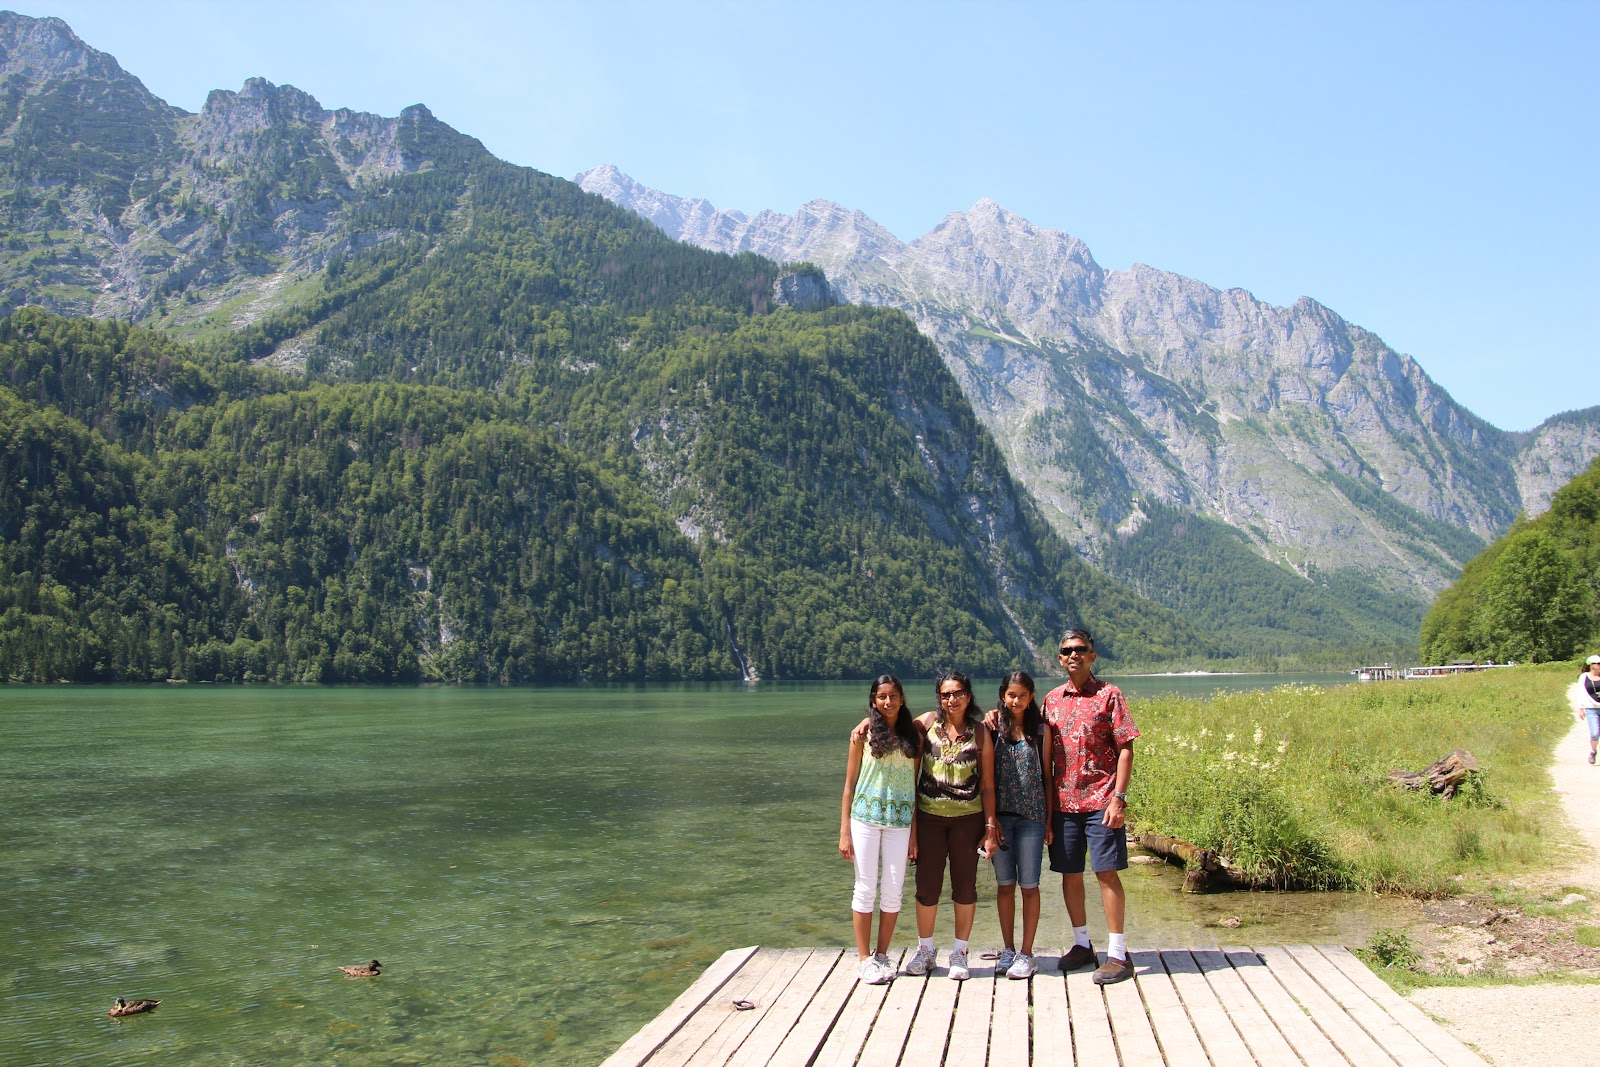 picturesque postcards: Lake Konigssee and Lake Obersee